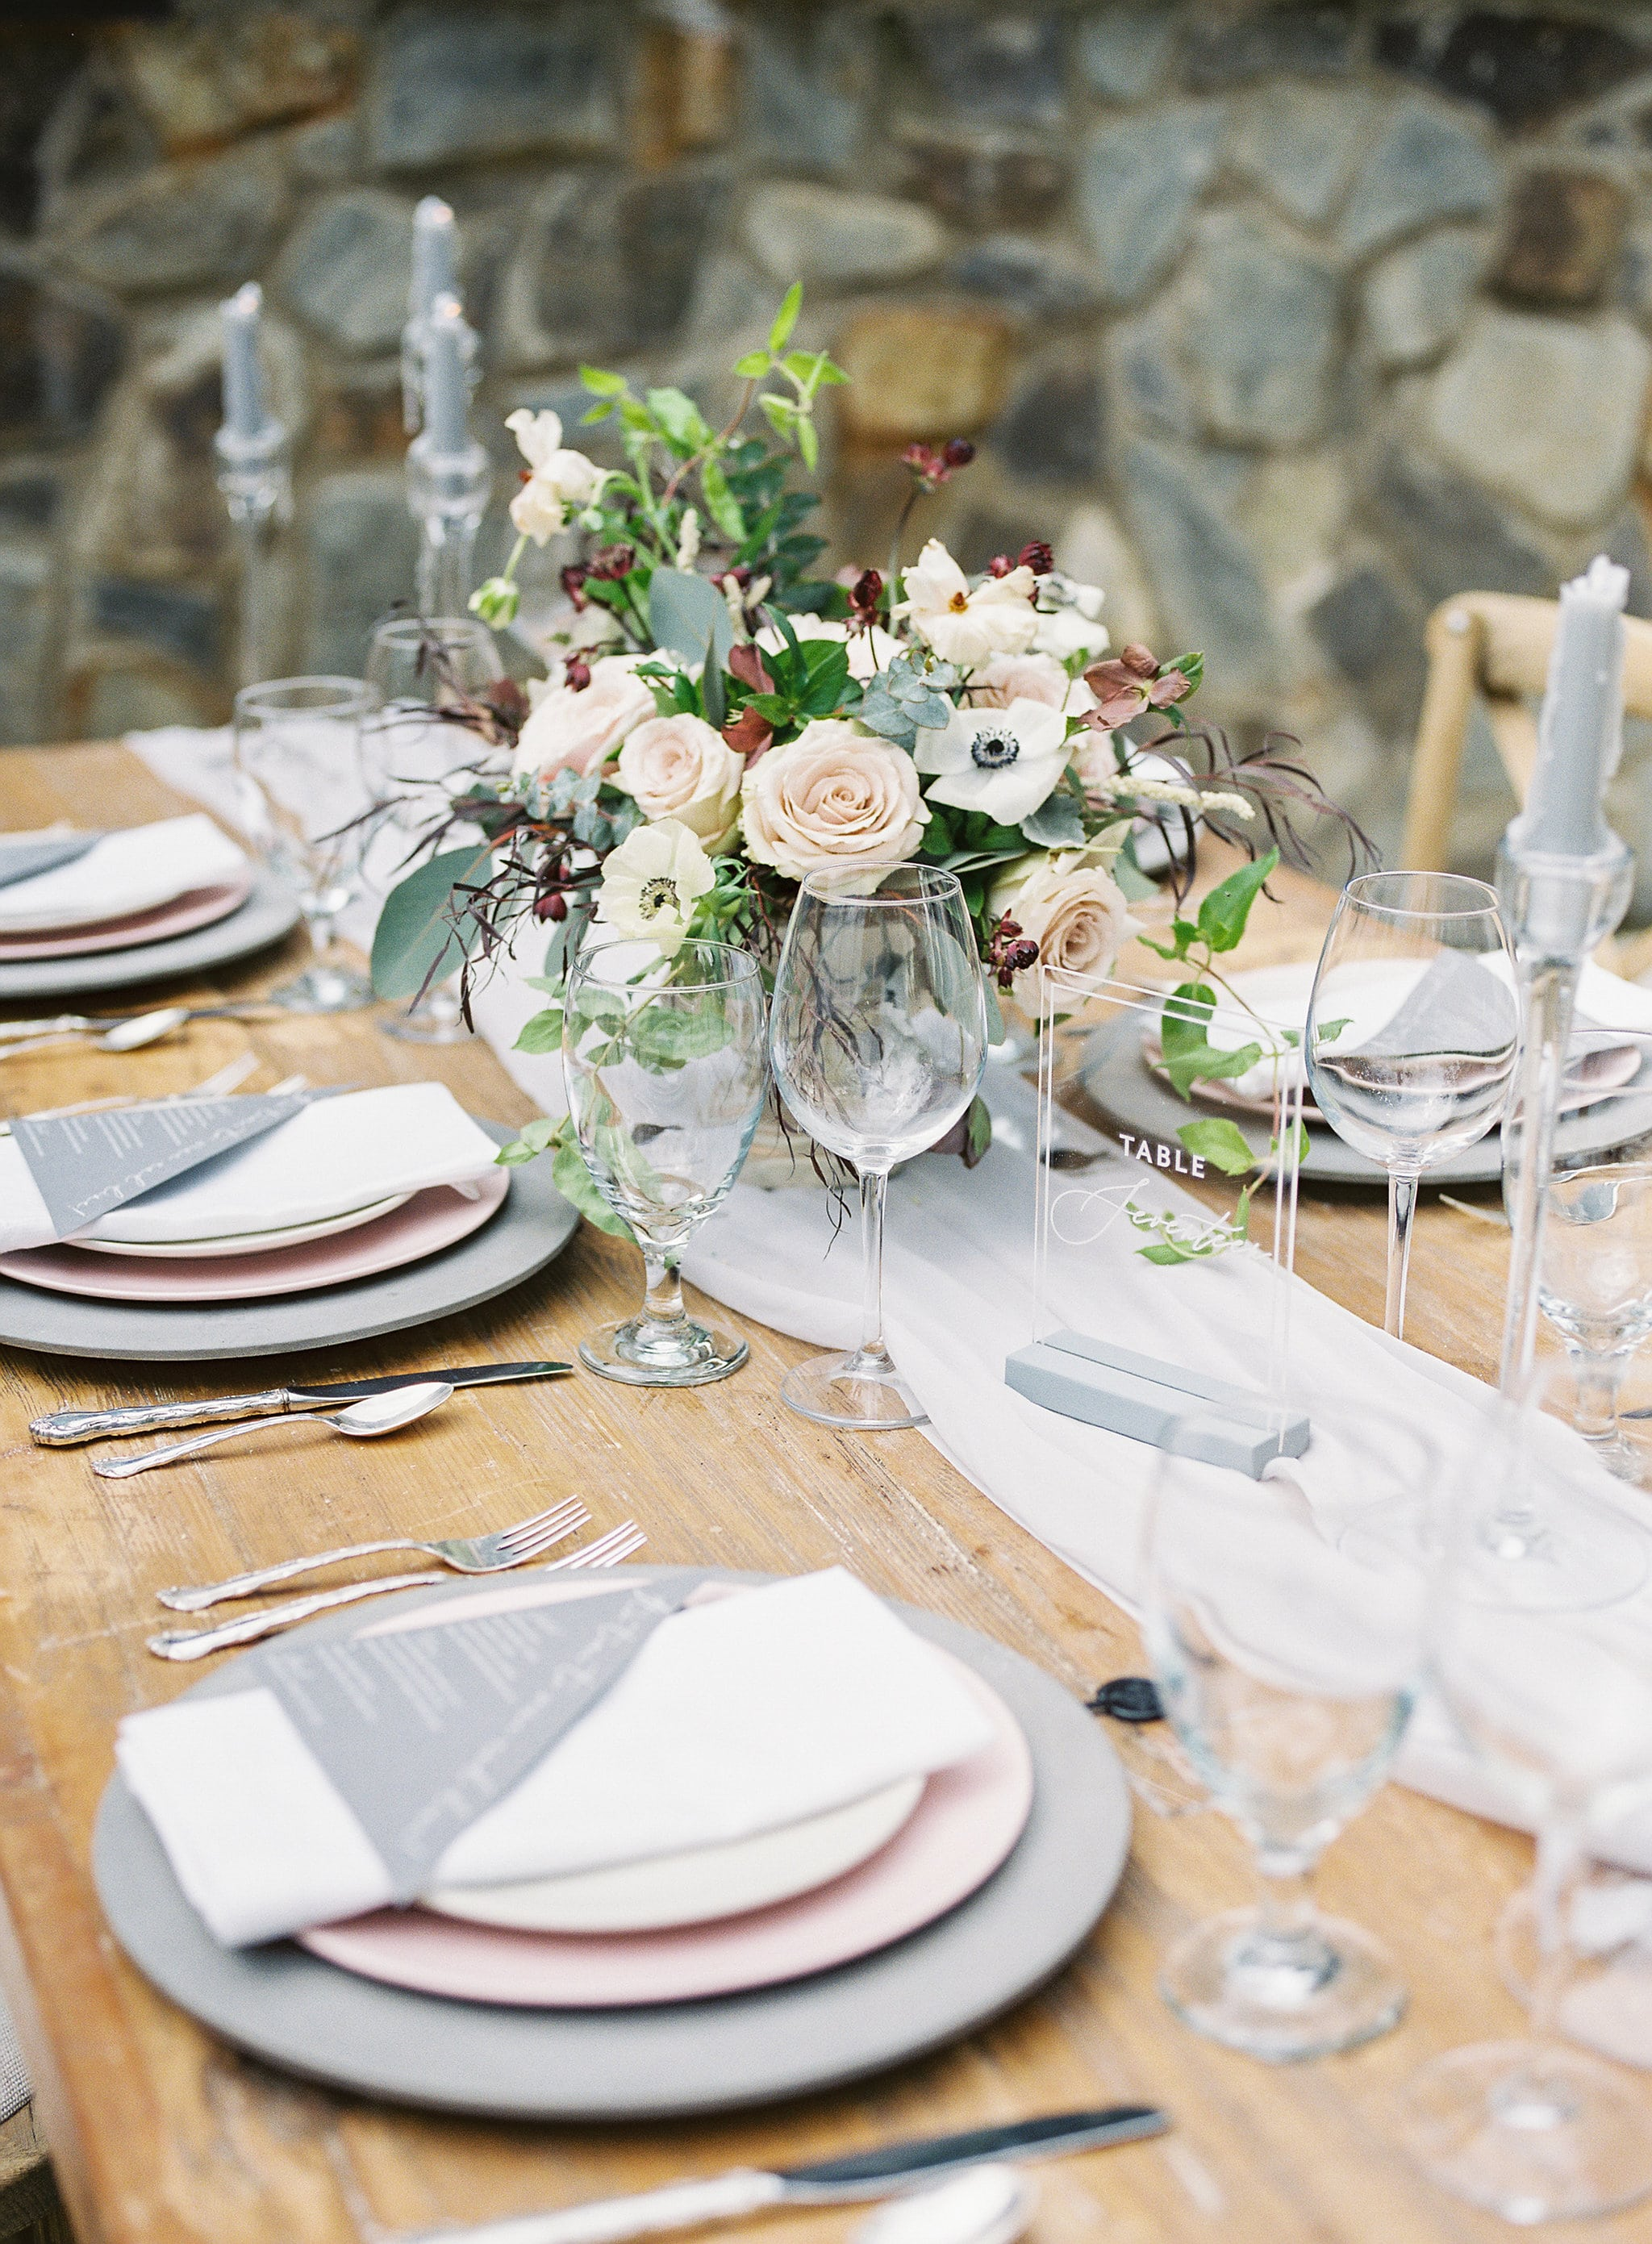 Amazing tablescape has gray details with red accents creates an amazing setting at Tipsy Goat Estates